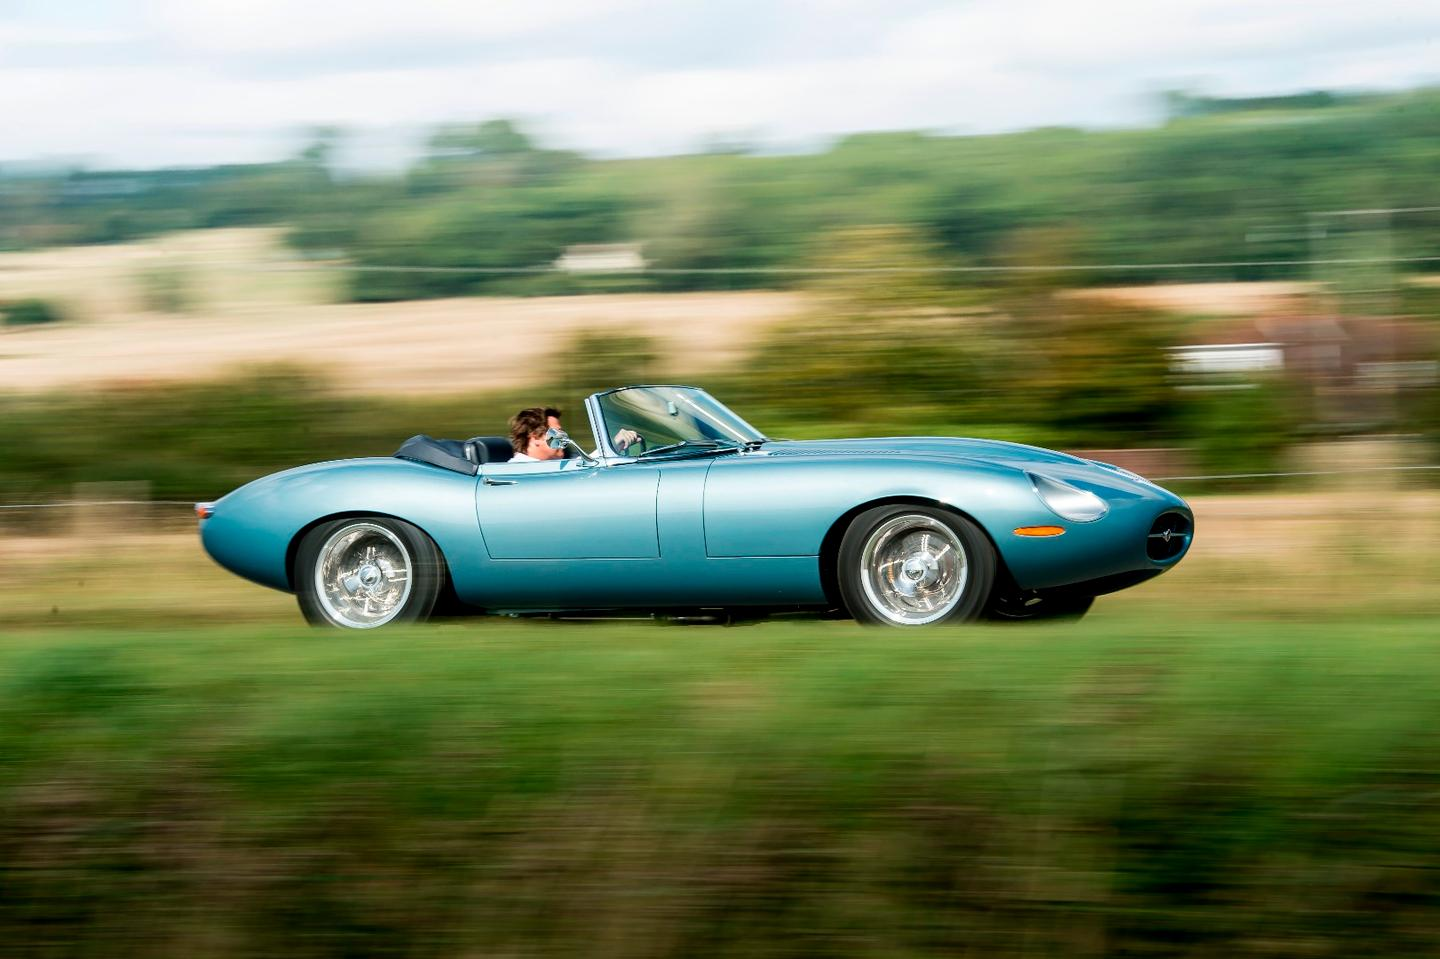 The Spyder GThas the smooth contours and open-air feel of the Eagle Speedster with the touring capabilitiesof the Low Drag GT